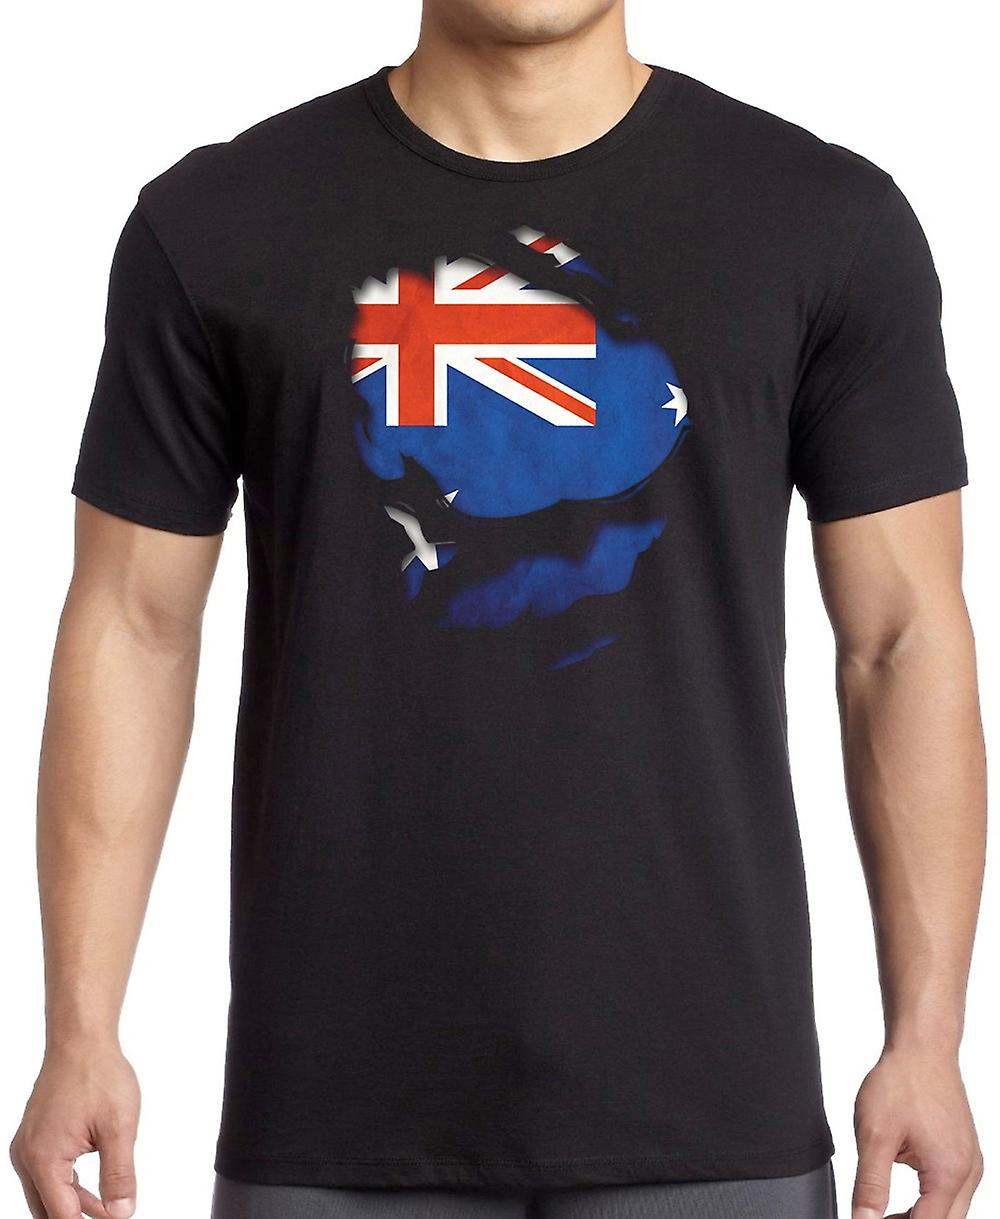 Australia Australia Ripped Effect Under Shirt Women T Shirt